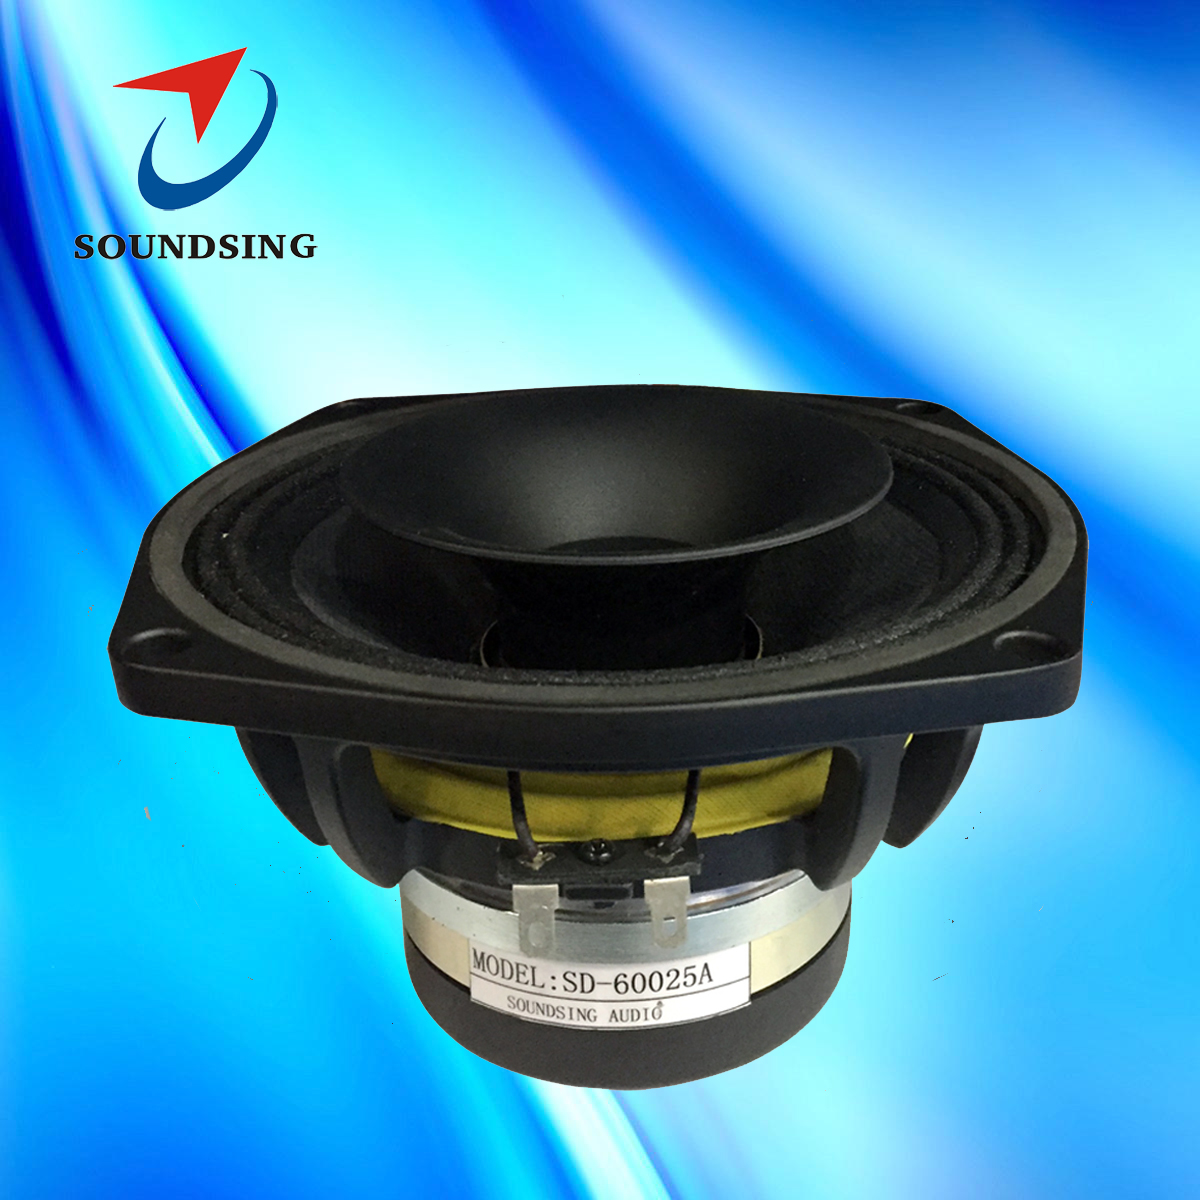 6.5 inch neodymium coaxial speakers SD-60025A